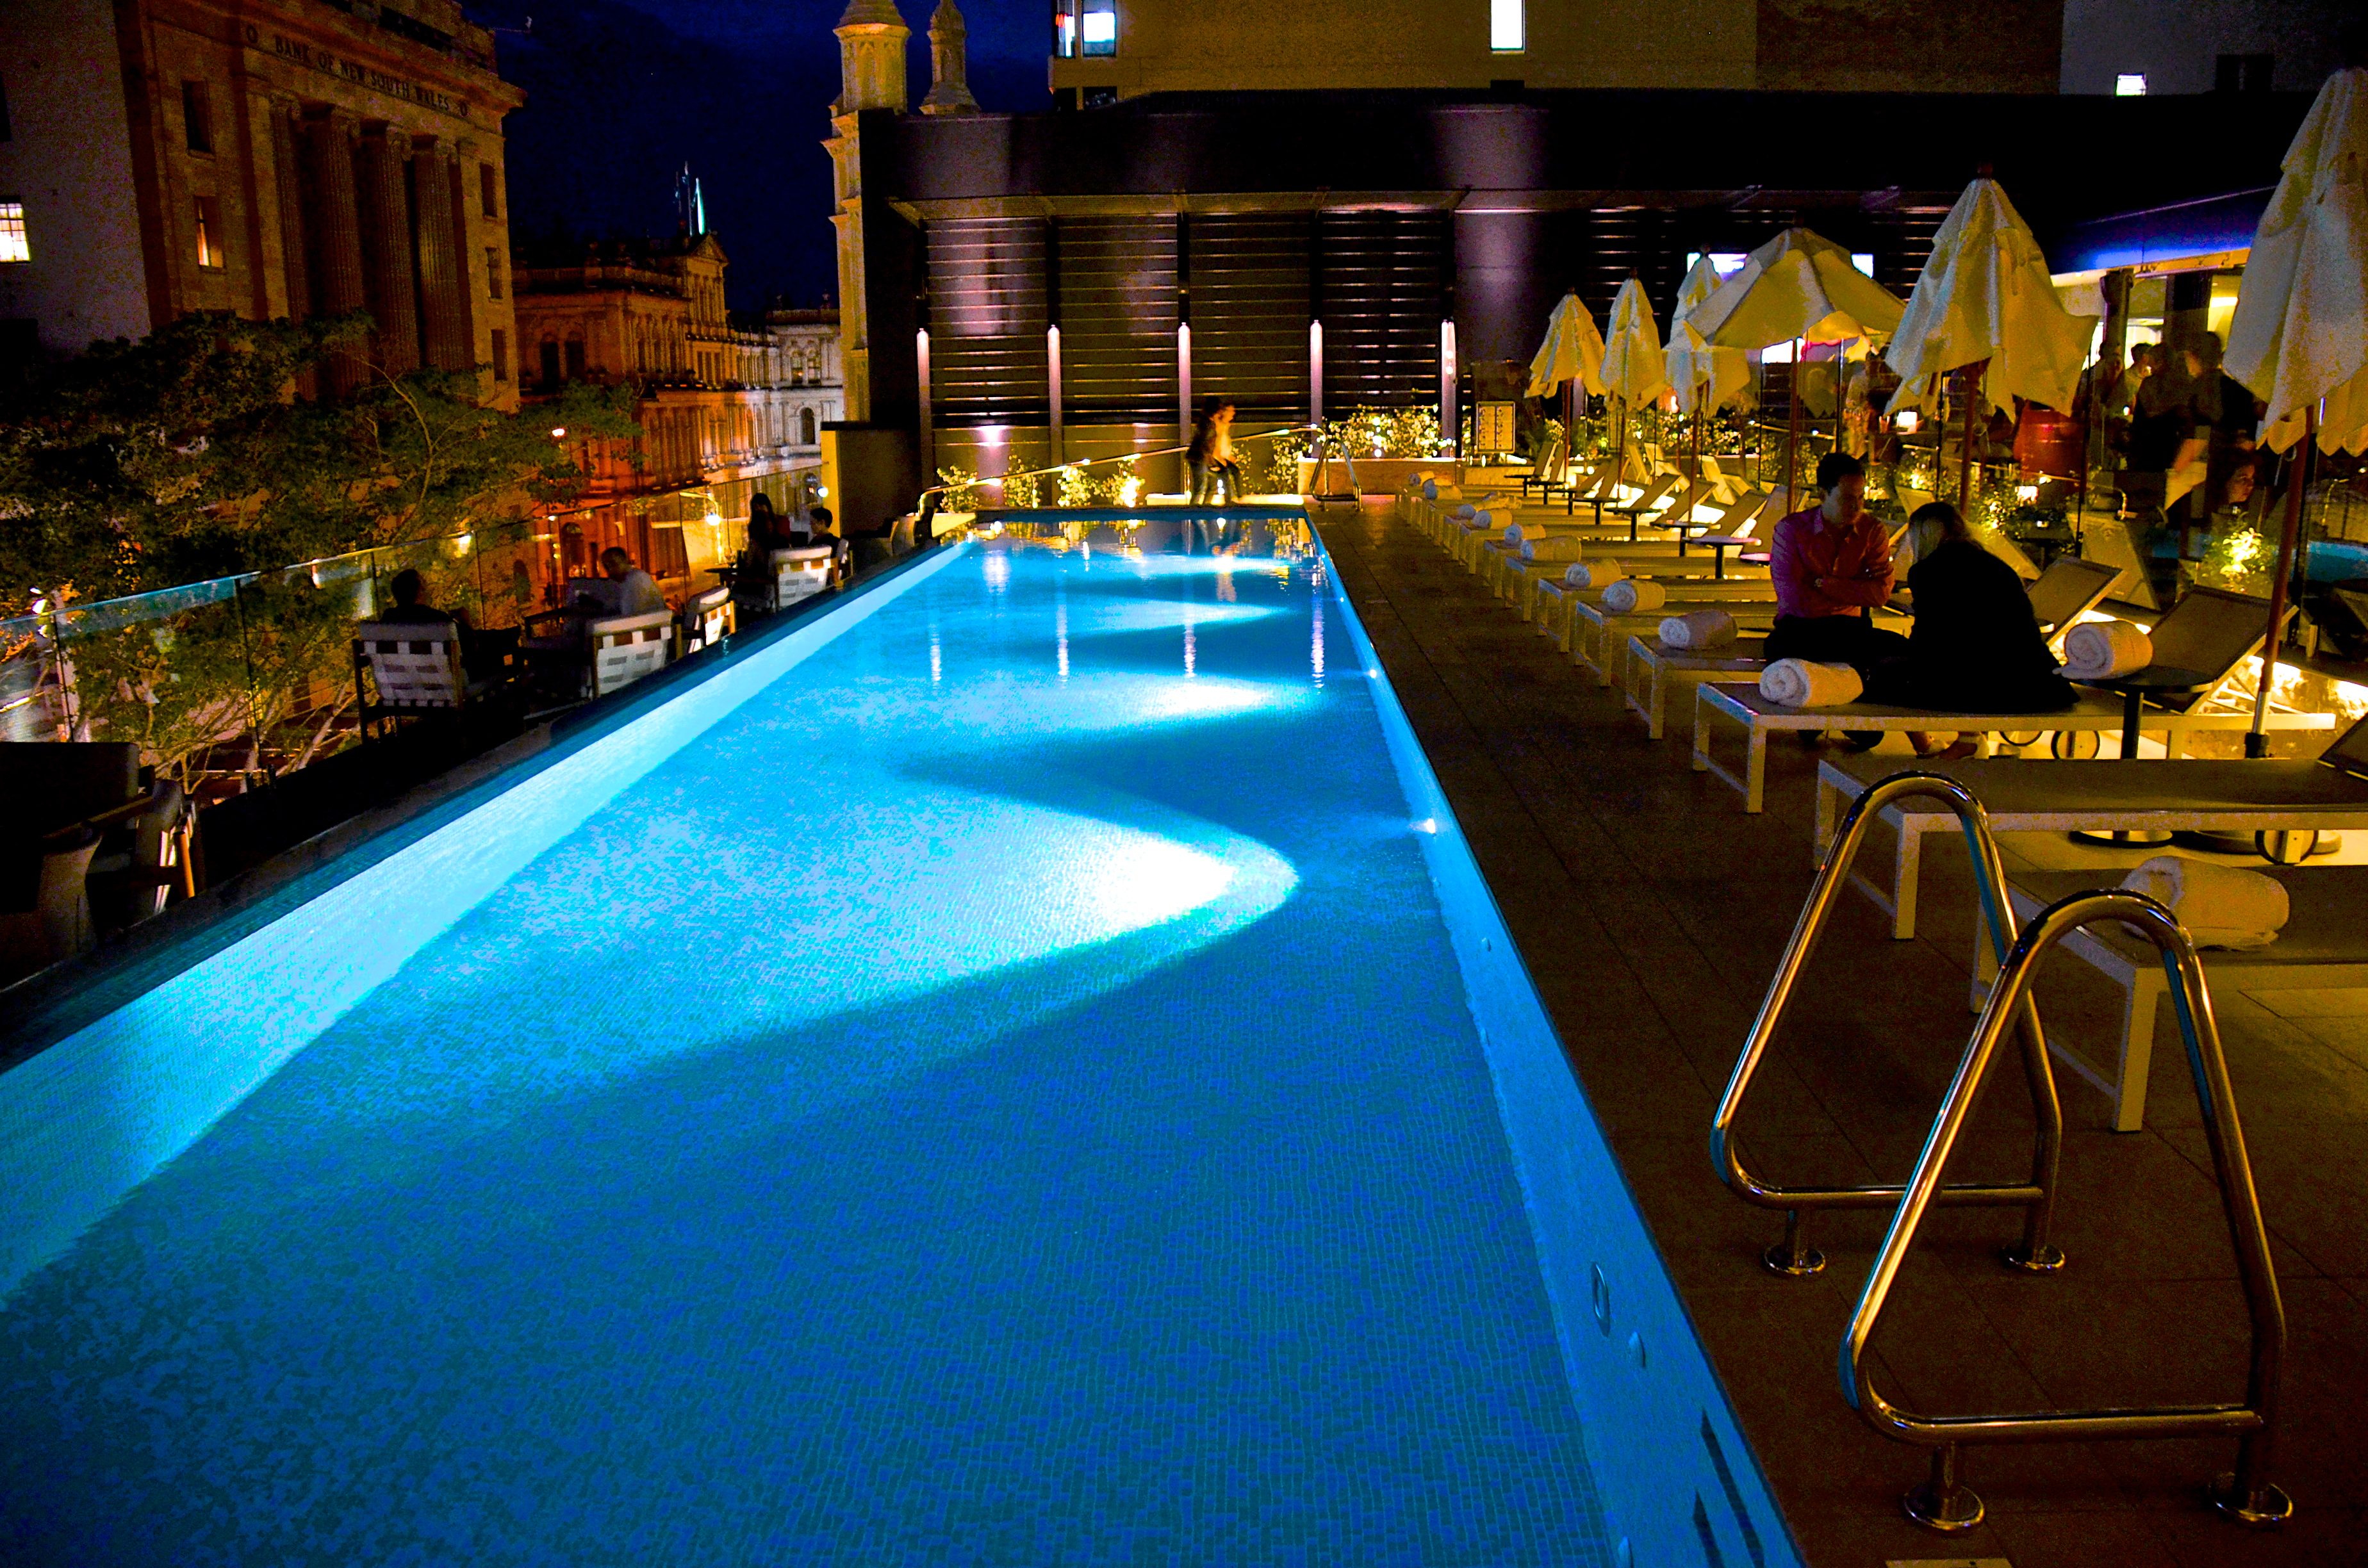 Next Hotel Pool Richard Tommy Campion Photographer